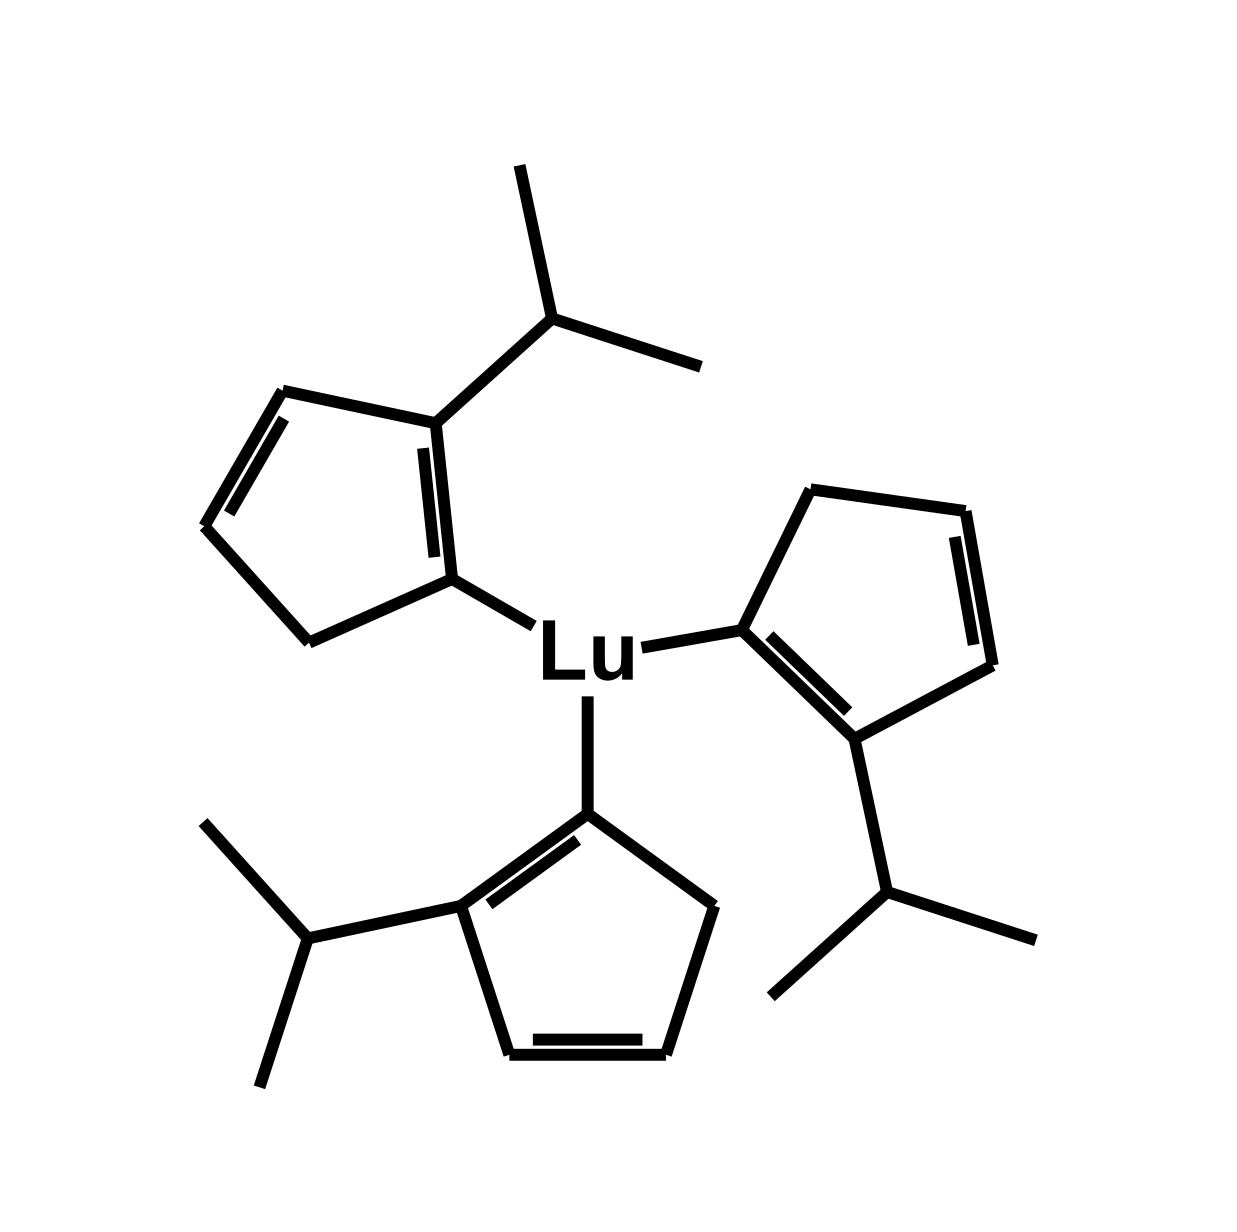 Tris(isopropylcyclopentadienyl)lutetium(III) Chemical Structure